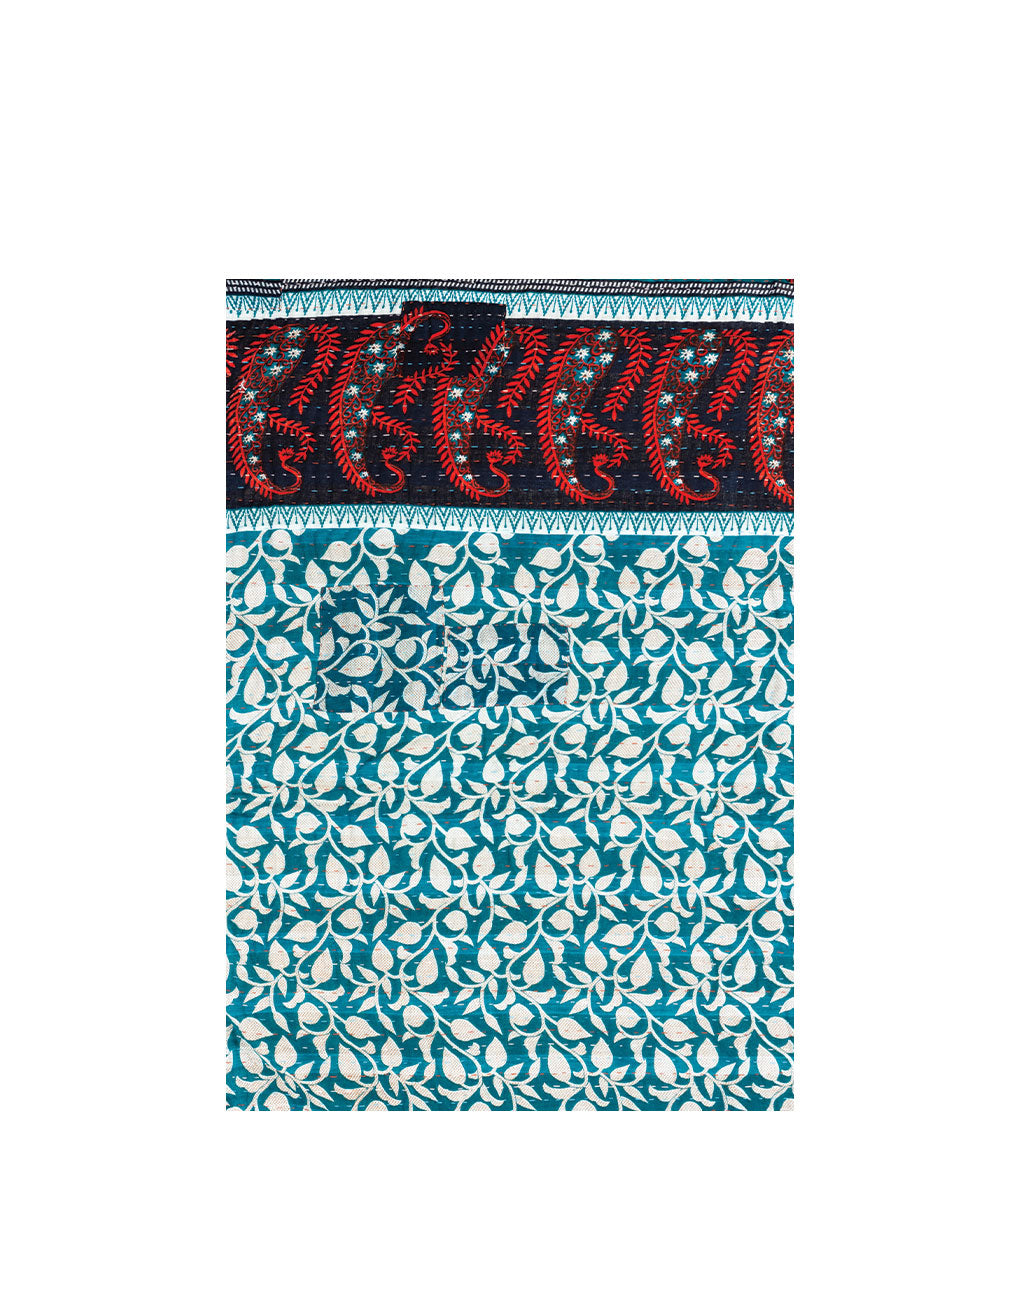 Small Kantha Quilt - No. 573 | The Little Market